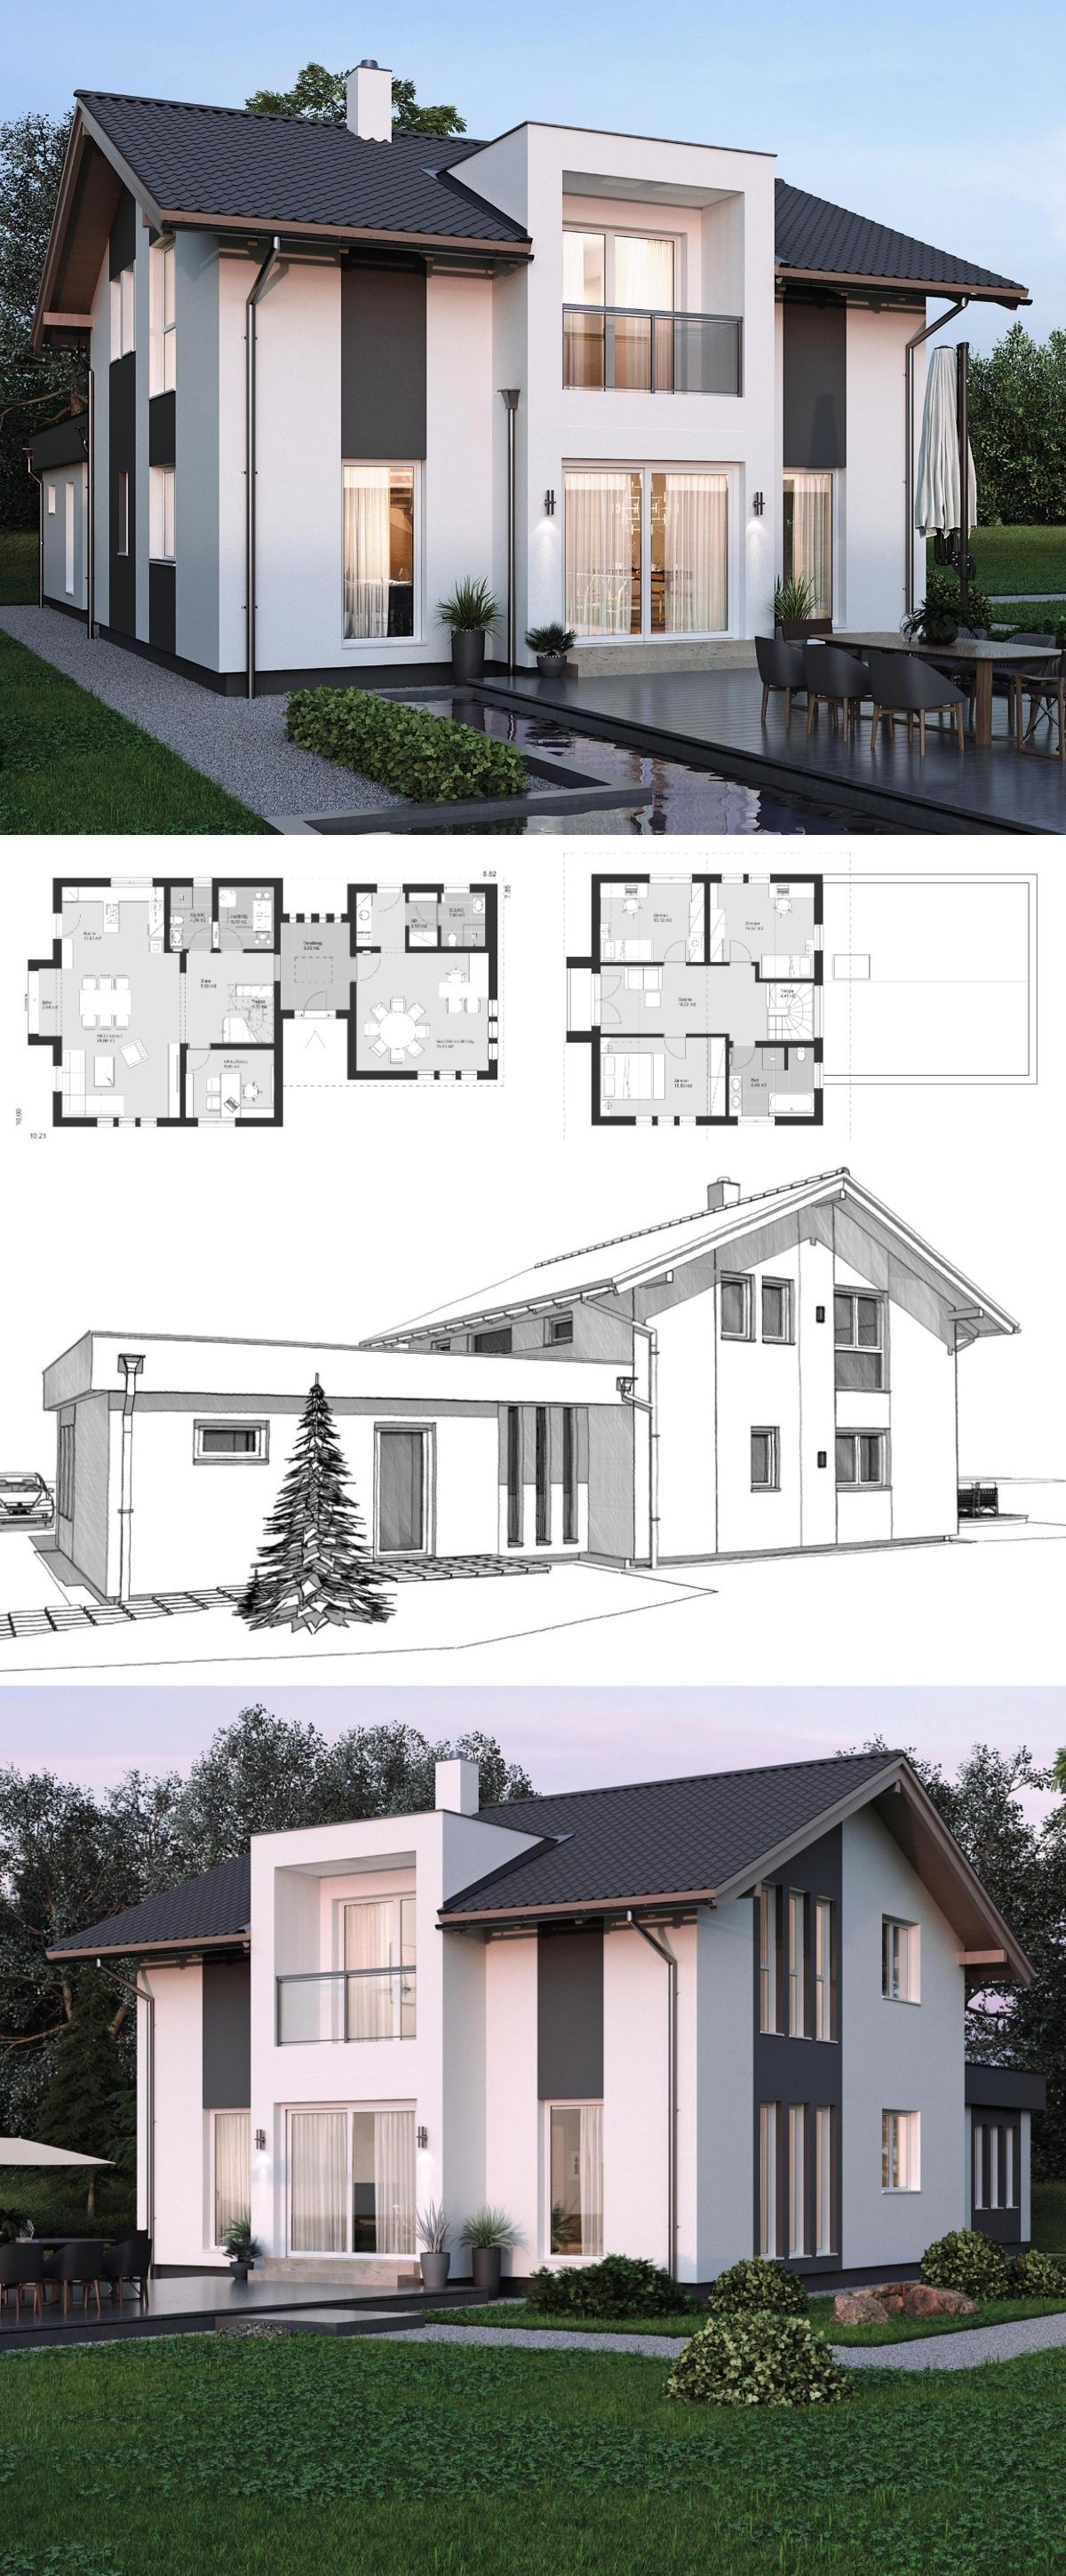 Modern contemporary styles architecture design house plans elk haus 153 dream home ideas with open floor and office layout by elk fertighaus